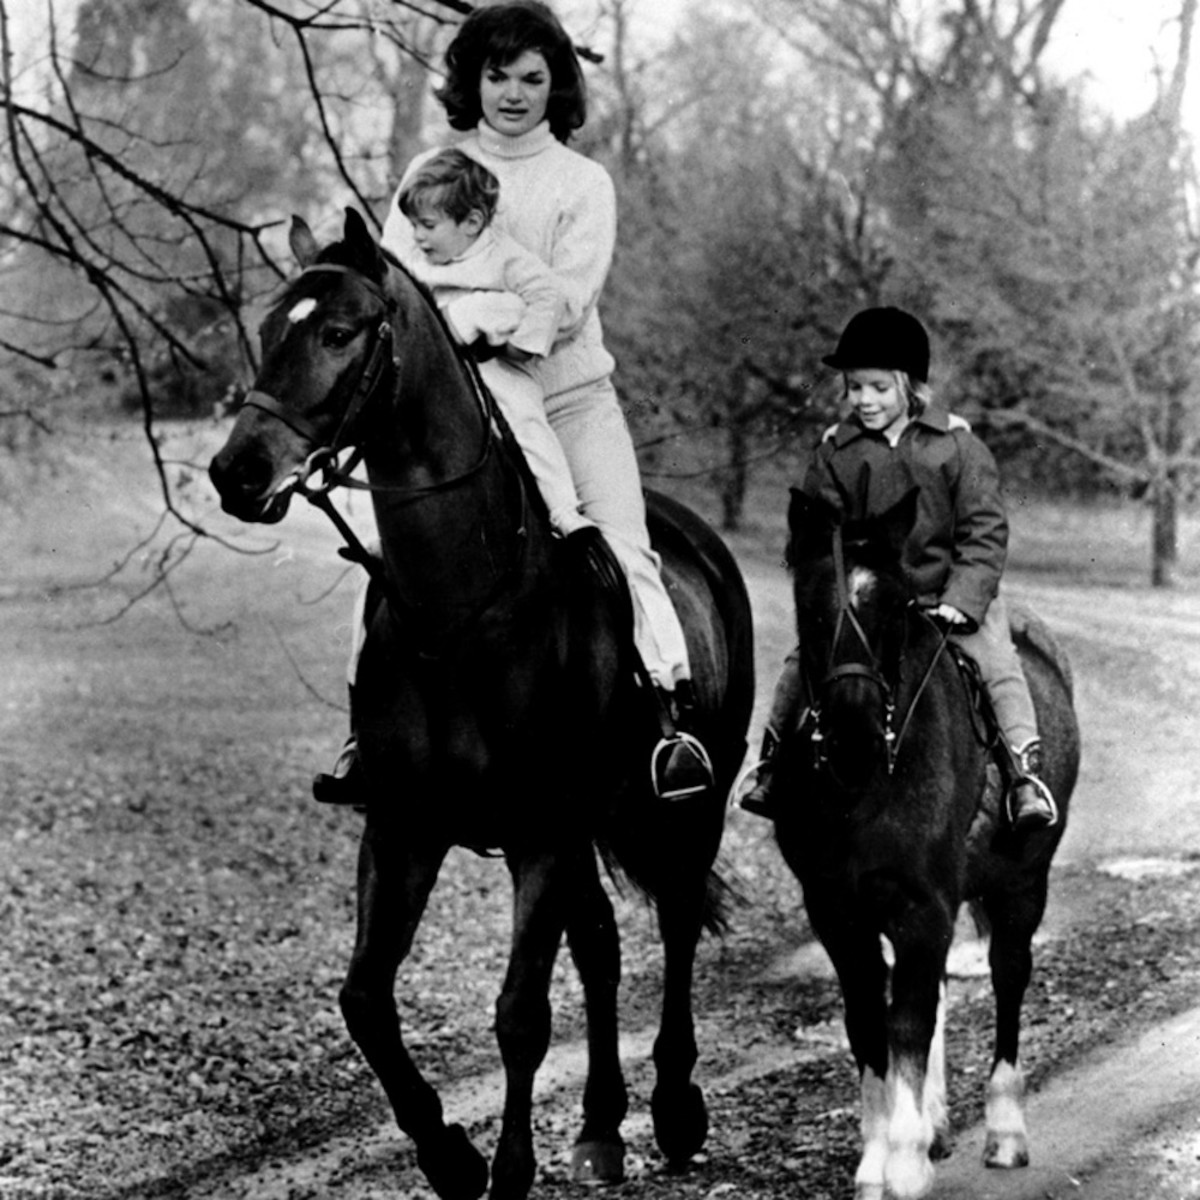 Jackie Kennedy riding with her children, Caroline and John